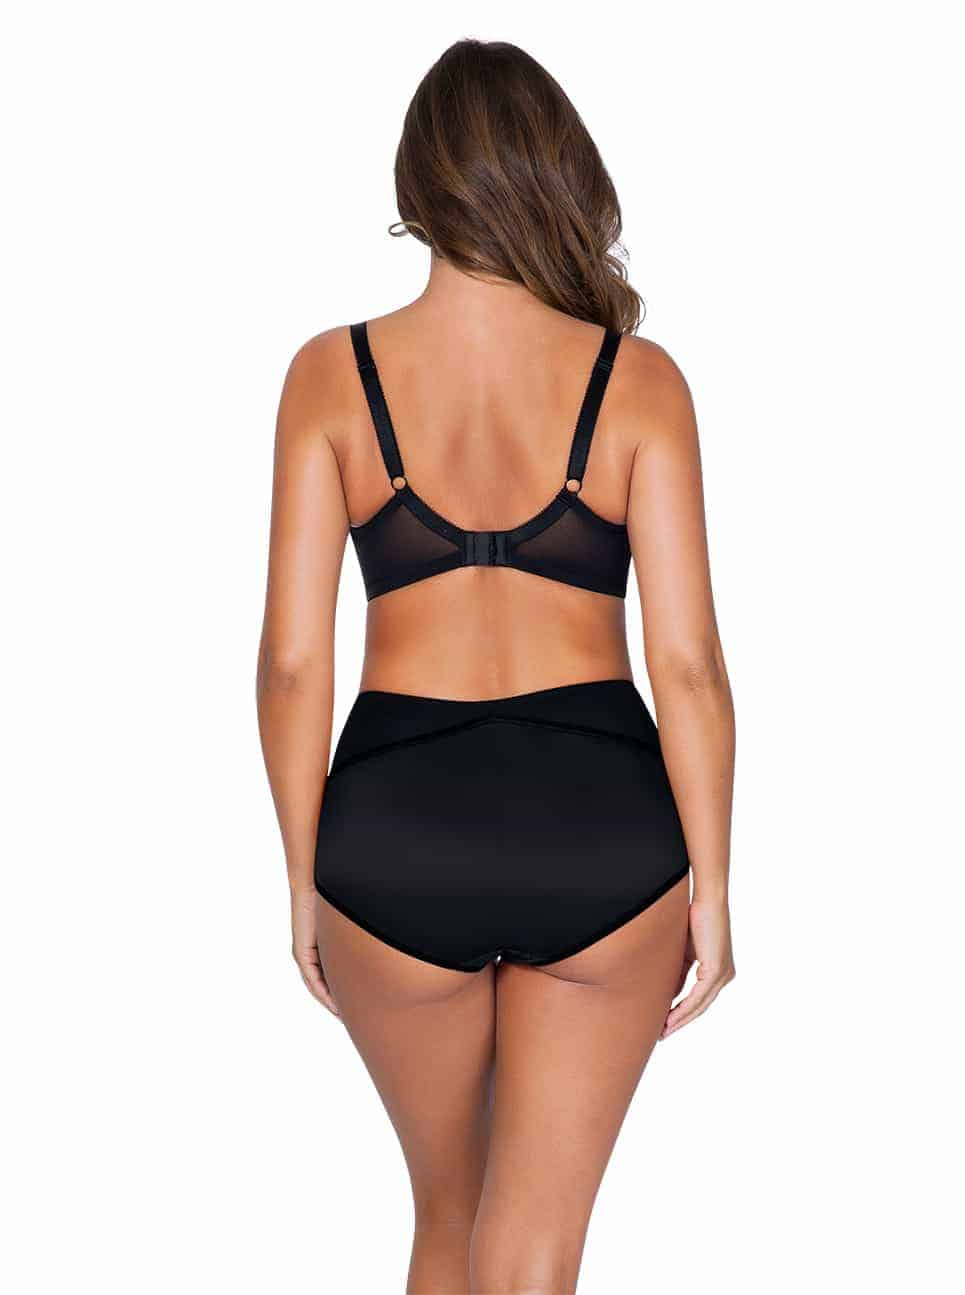 Charlotte 6901 6917 HighWaistedBriefBlack Back - Charlotte Highwaist Brief - Black - 6917